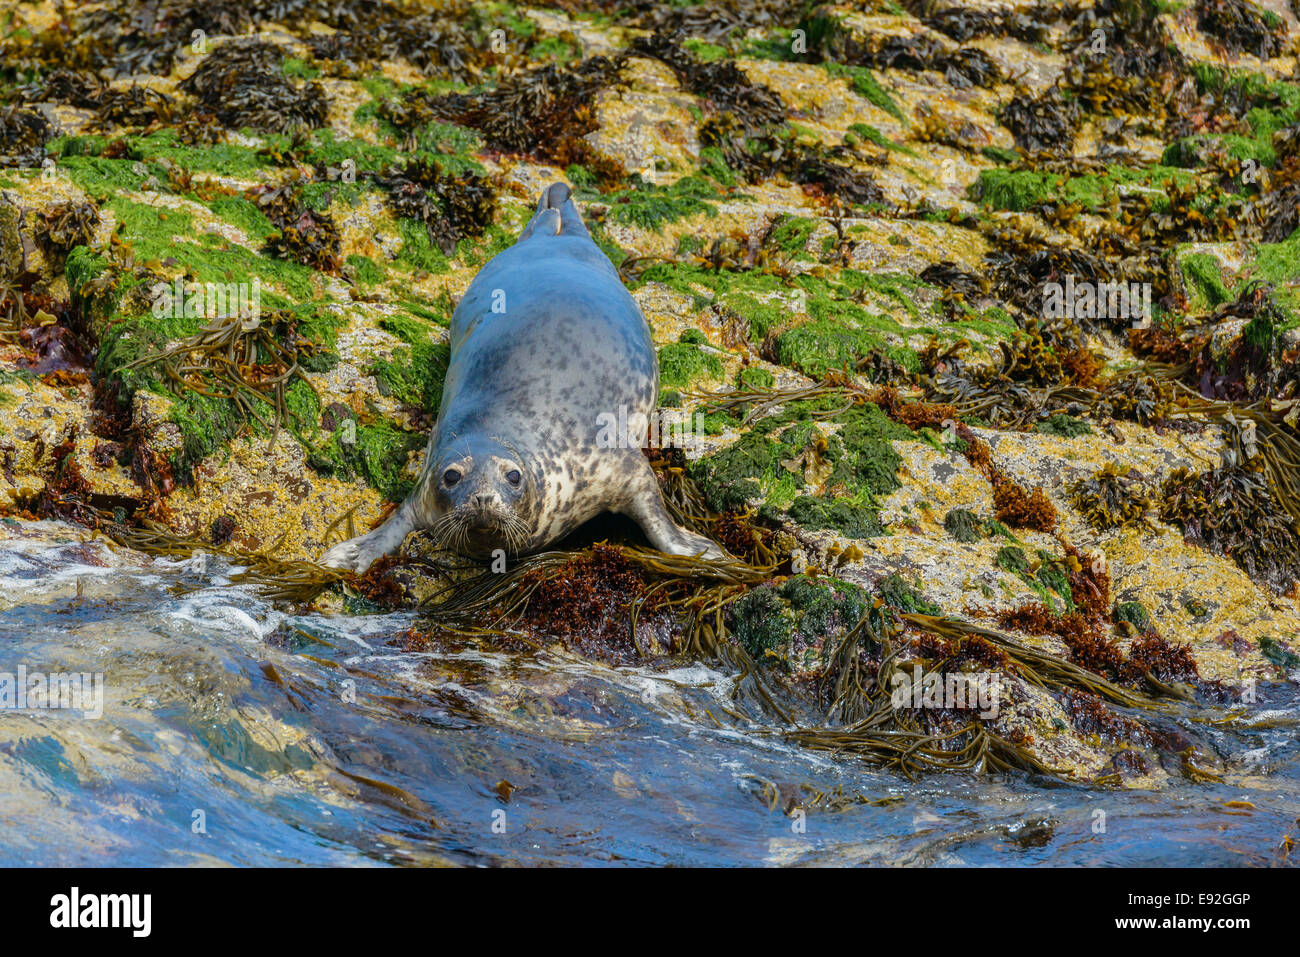 A lone Horsehead Seal (Halichoerus grypus) looks up at camera from rocky natural habitat. - Stock Image